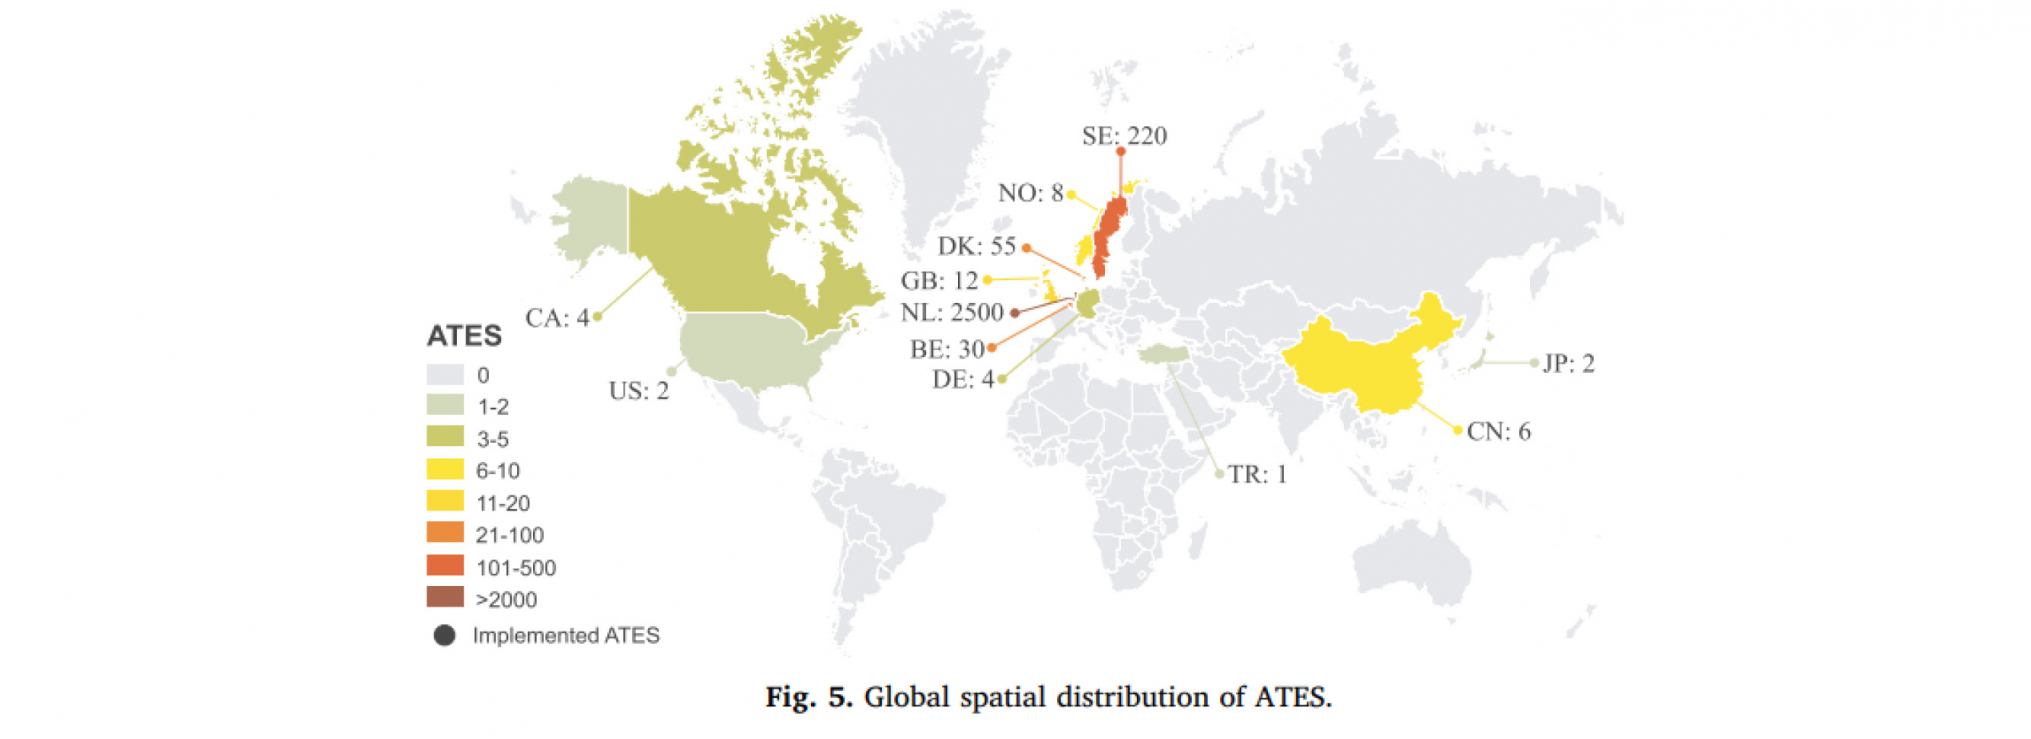 Distribution des ATES à travers le monde